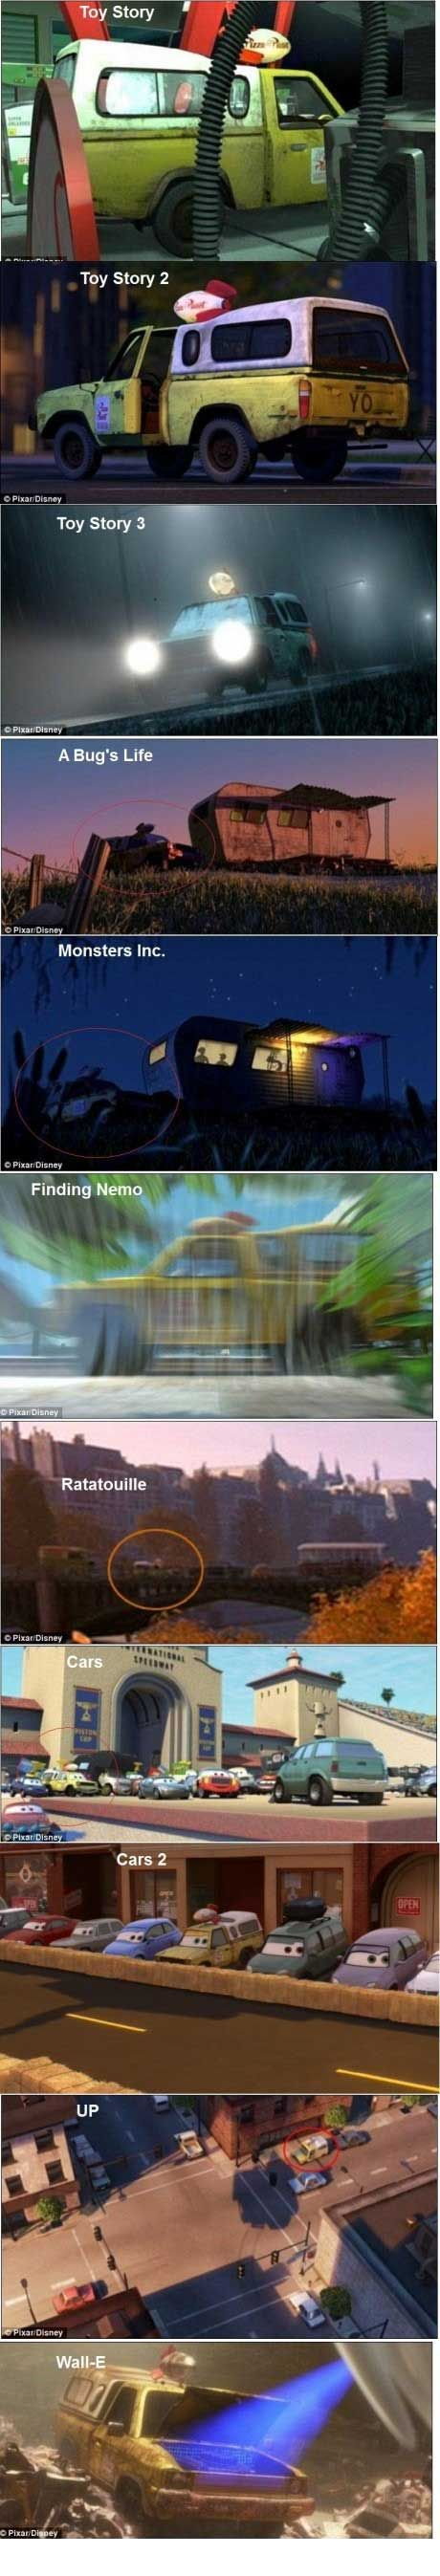 funny-same-car-in-pixar-movies-Easter-eggs.jpg 460×2,694 pixels